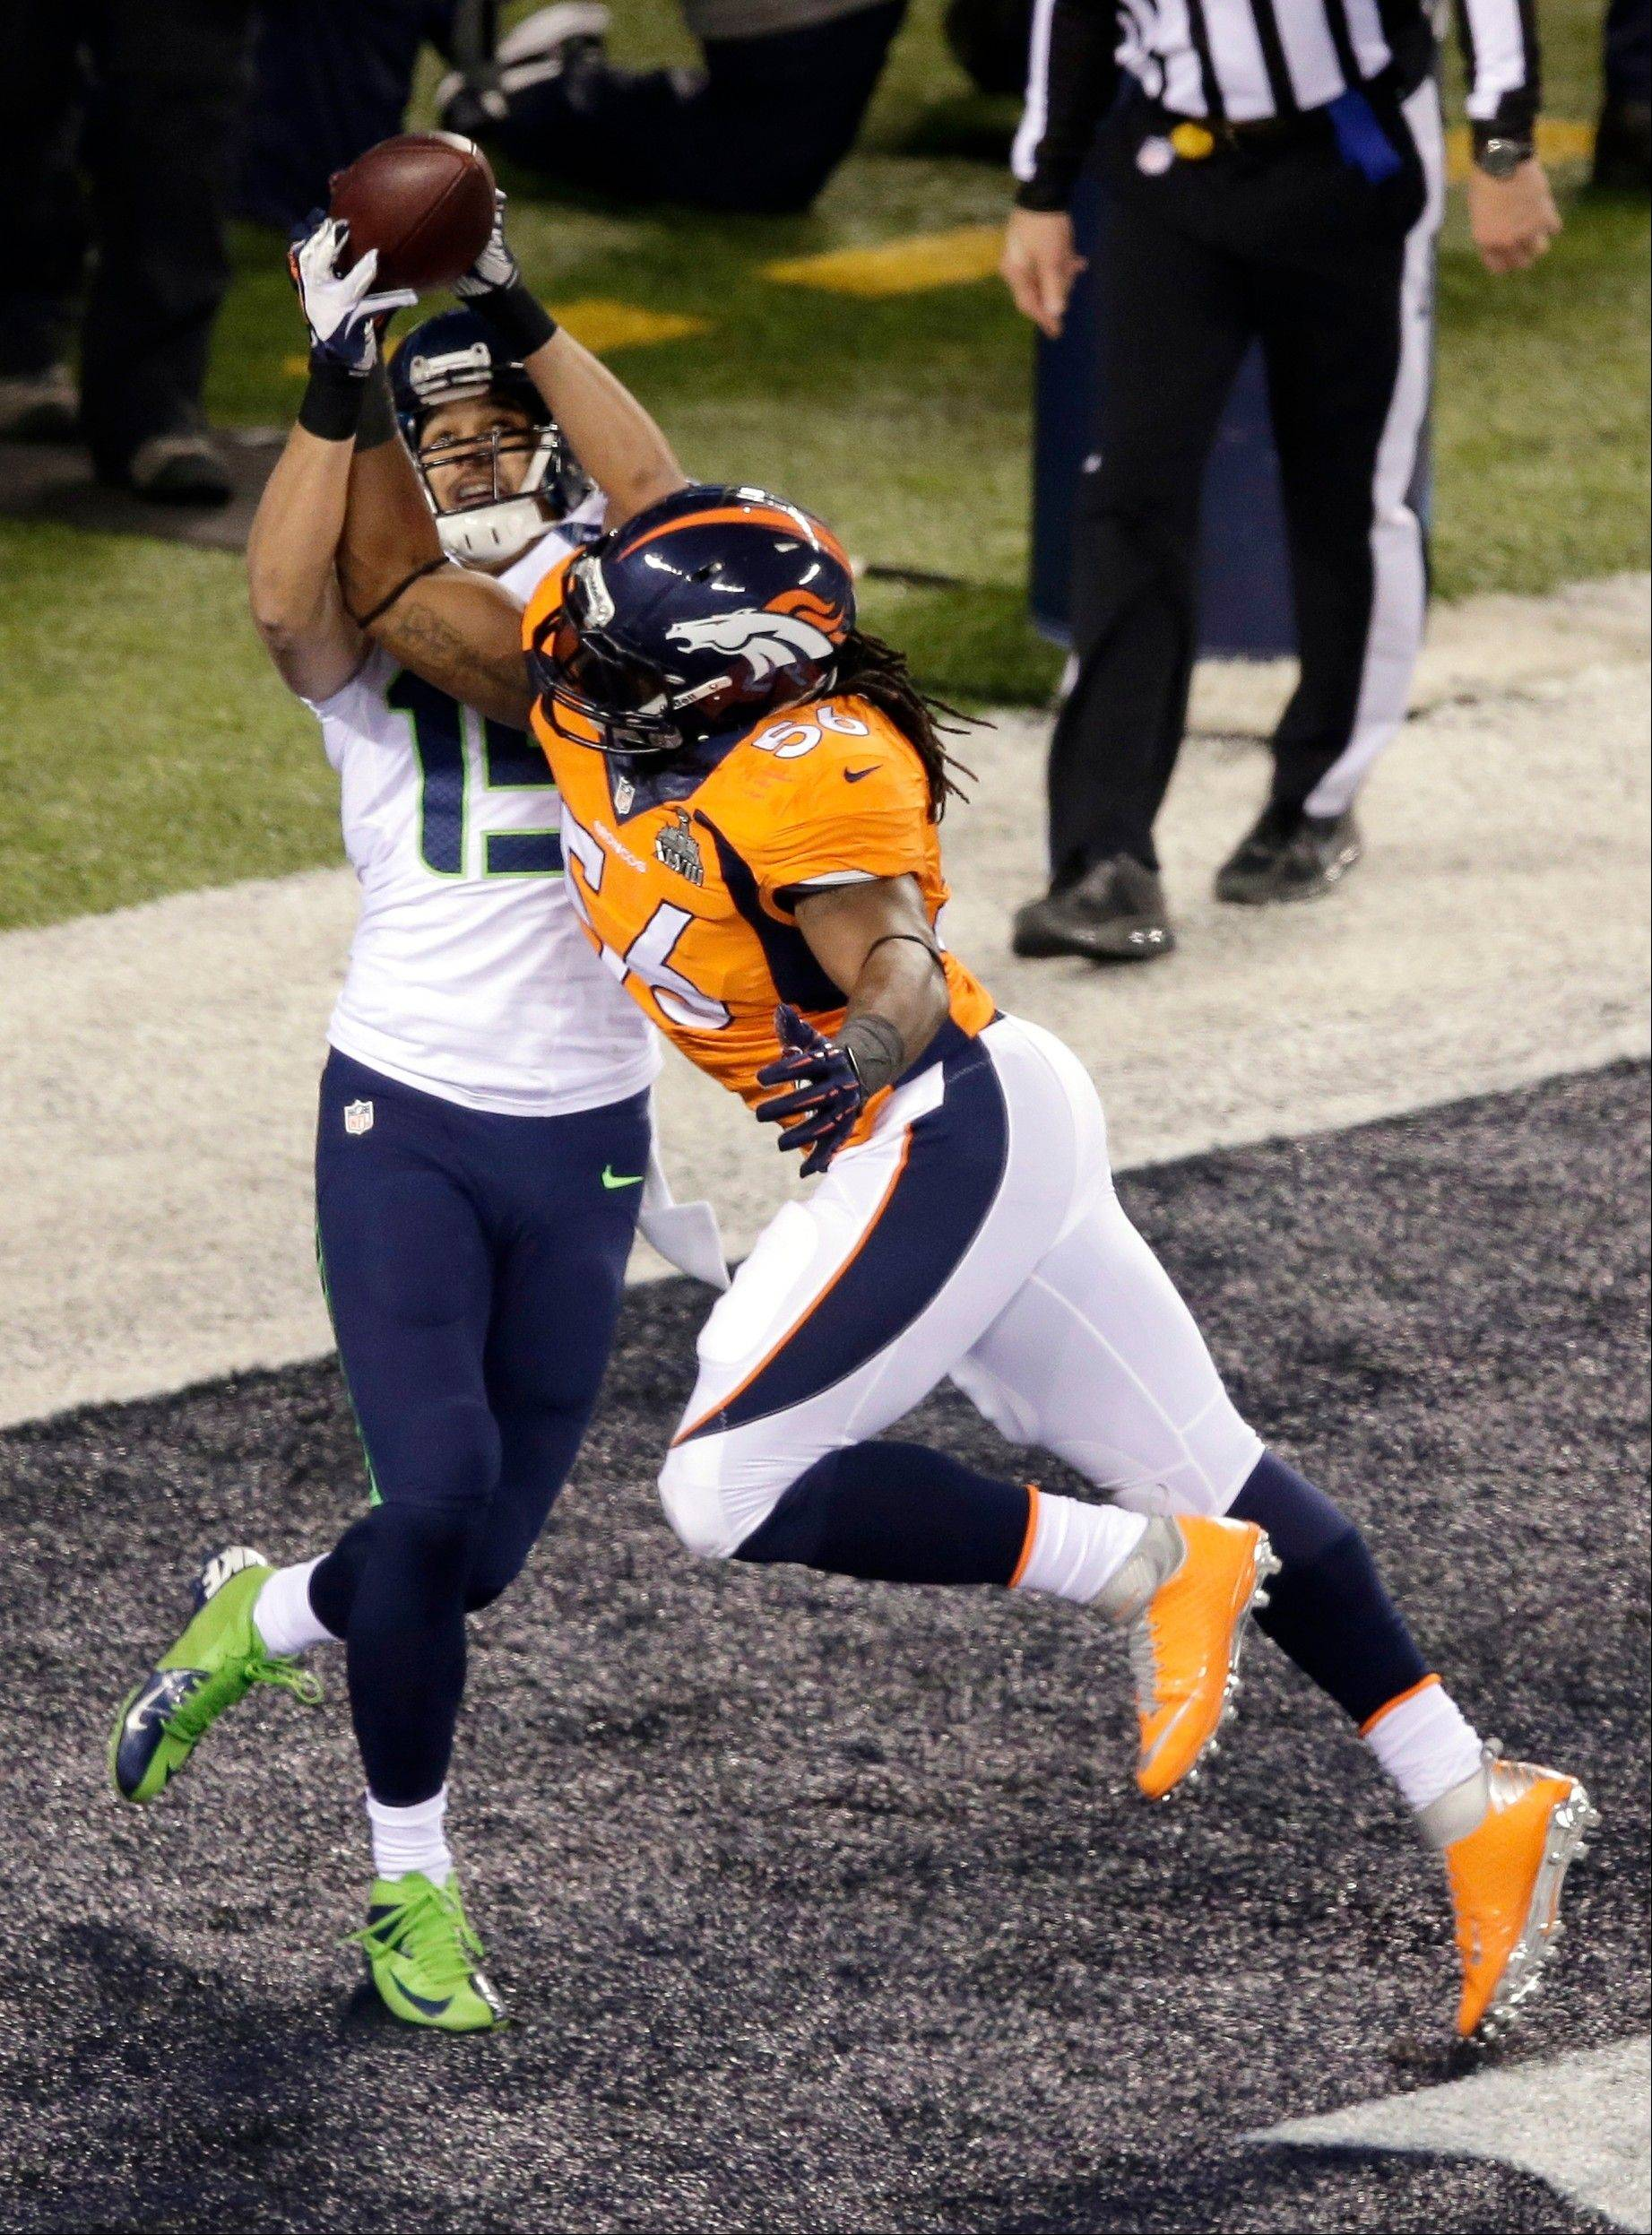 Denver Broncos' Nate Irving (56) breaks up a pass to Seattle Seahawks' Jermaine Kearse (15) during the first half.